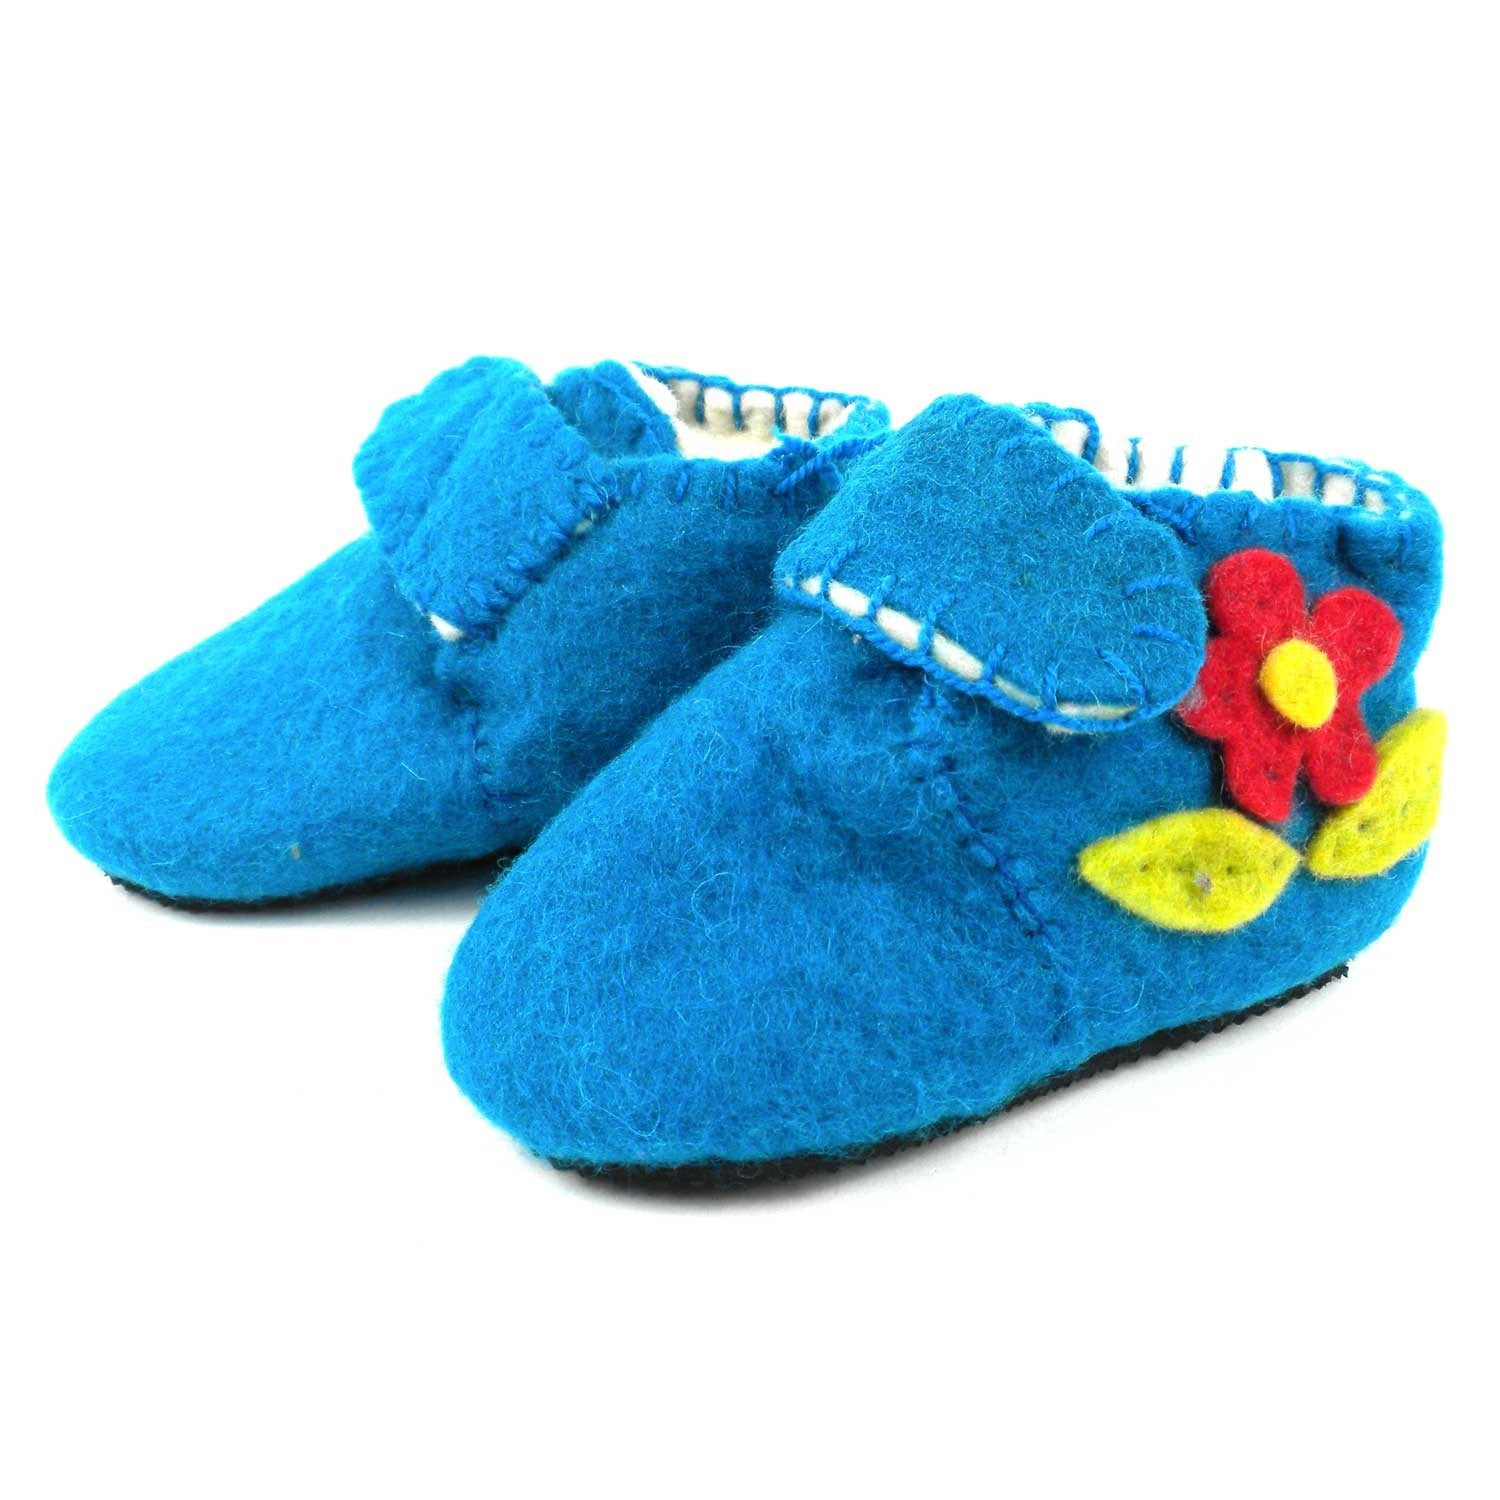 Blue Zooties Toddler - Silk Road Bazaar